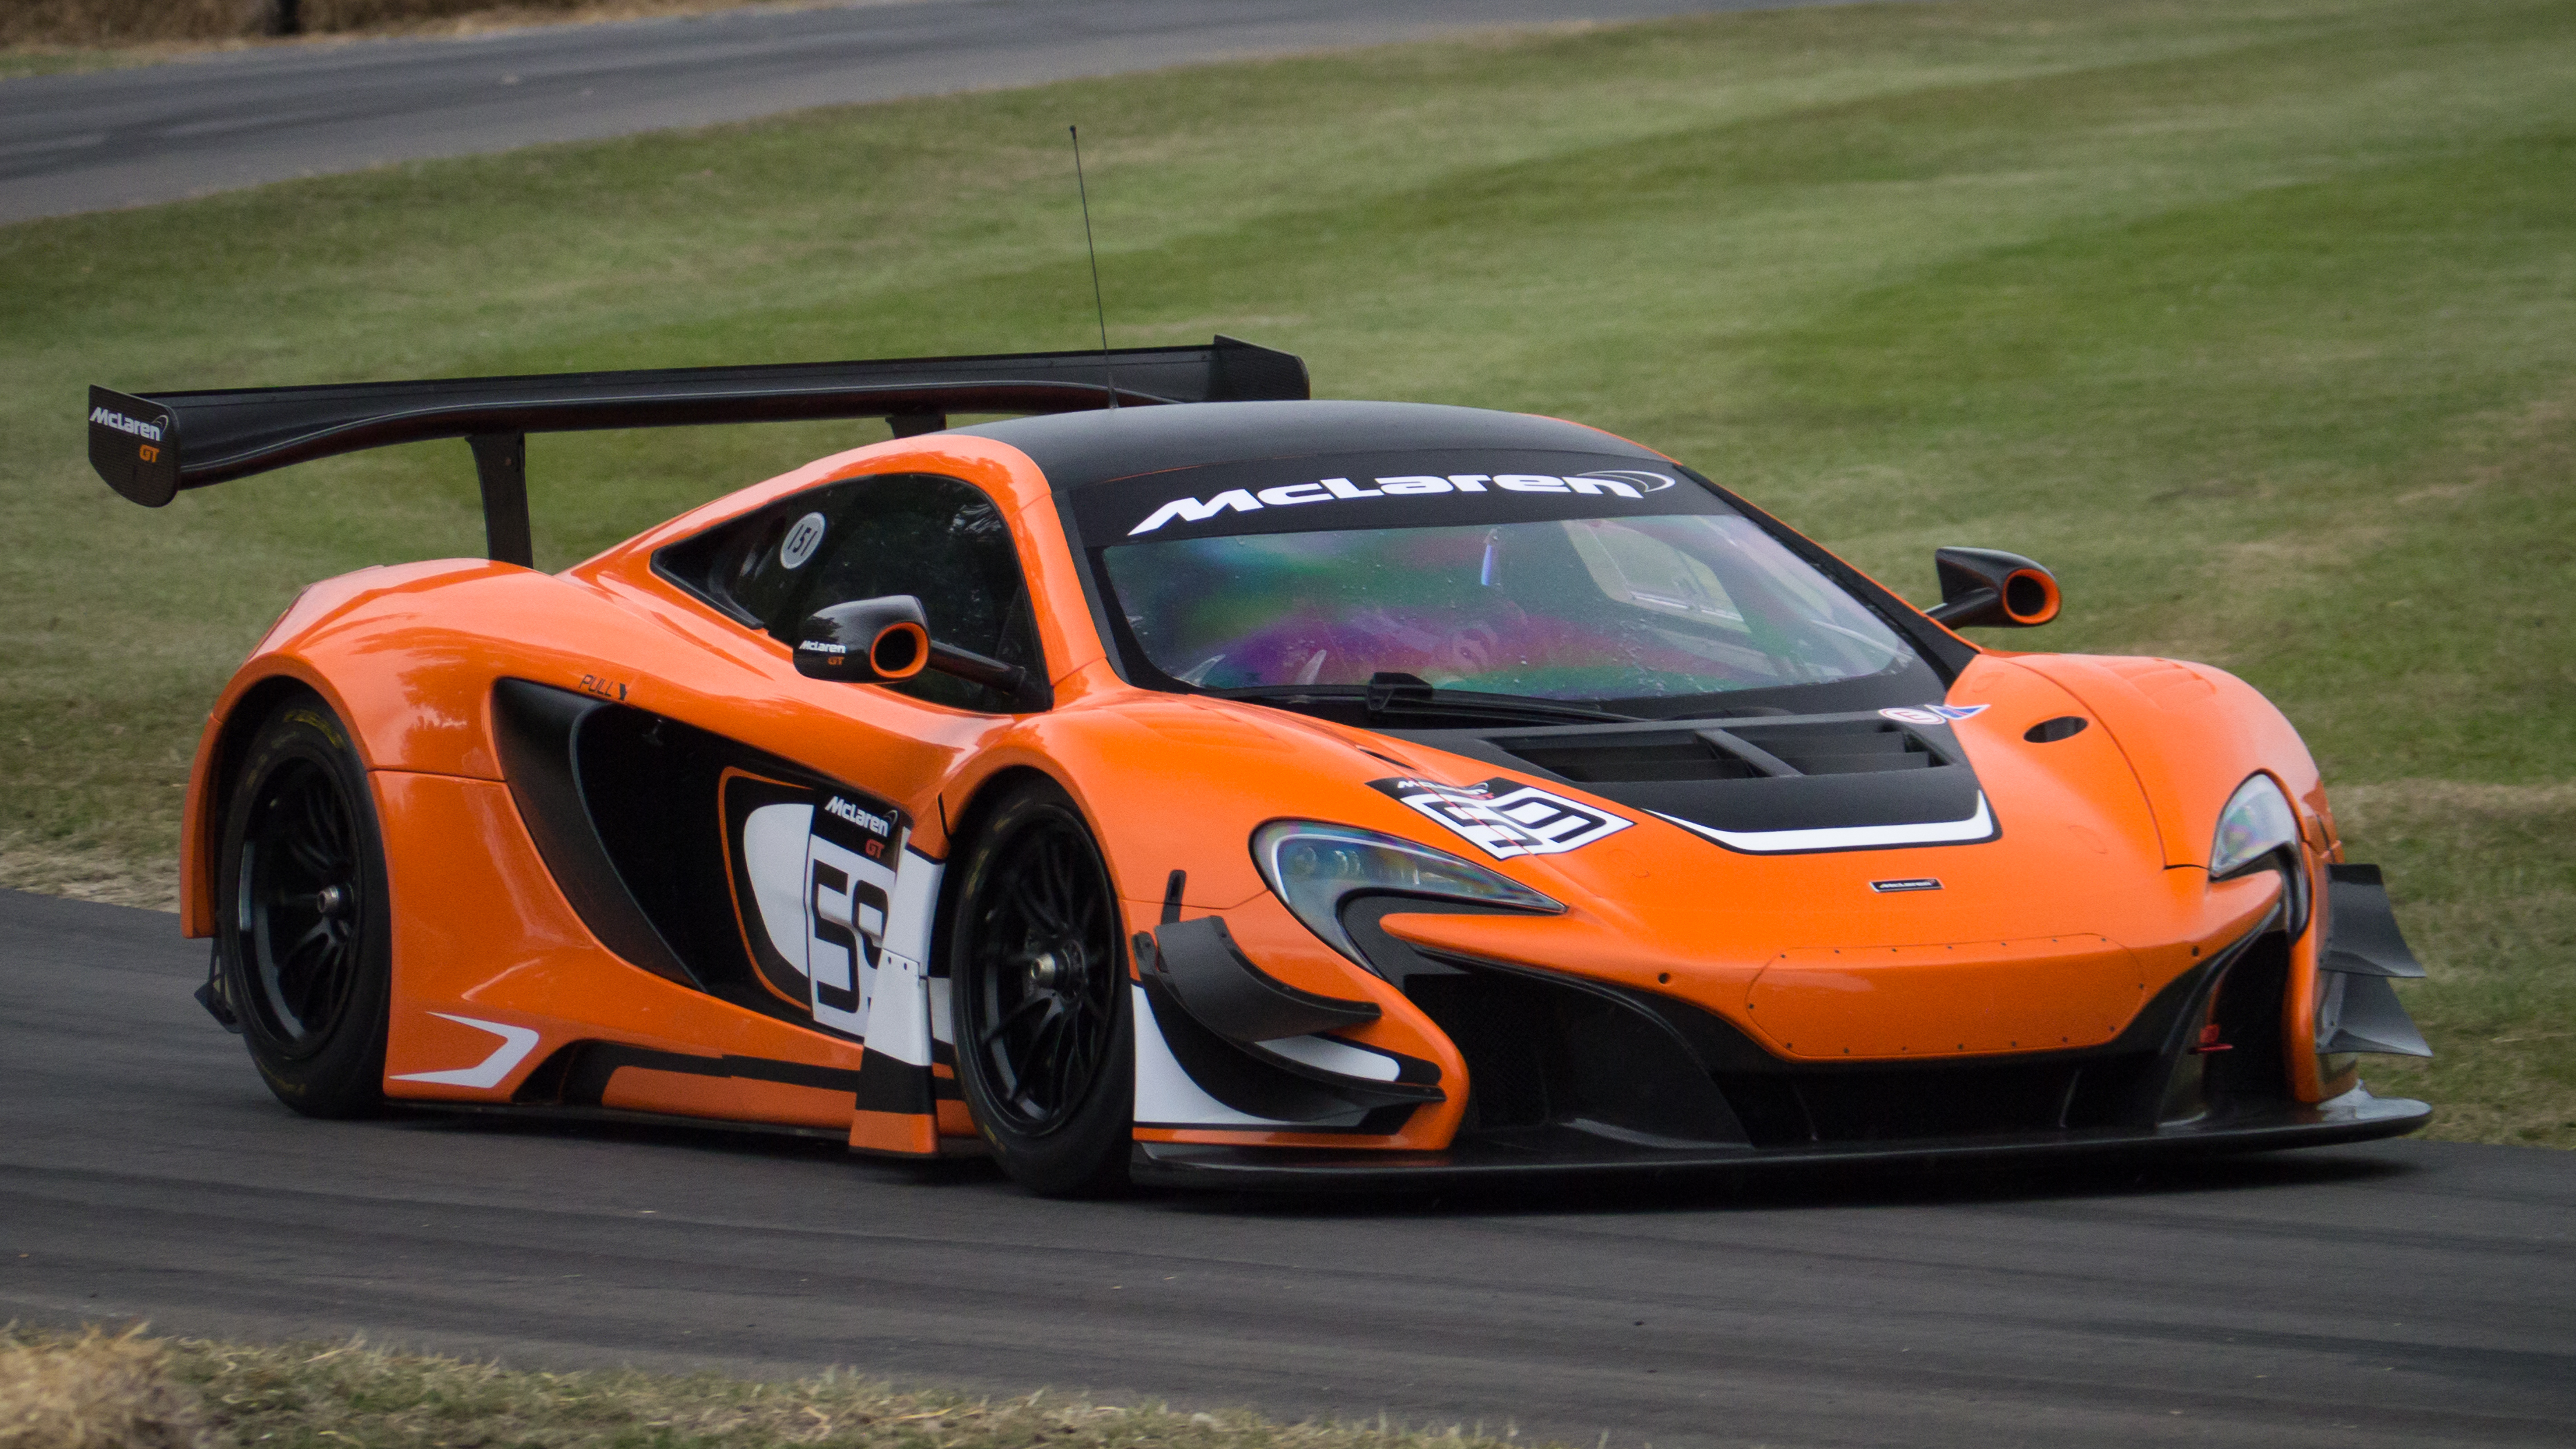 https://upload.wikimedia.org/wikipedia/commons/2/26/2015_McLaren_650S_GT3_%2819443180443%29.jpg